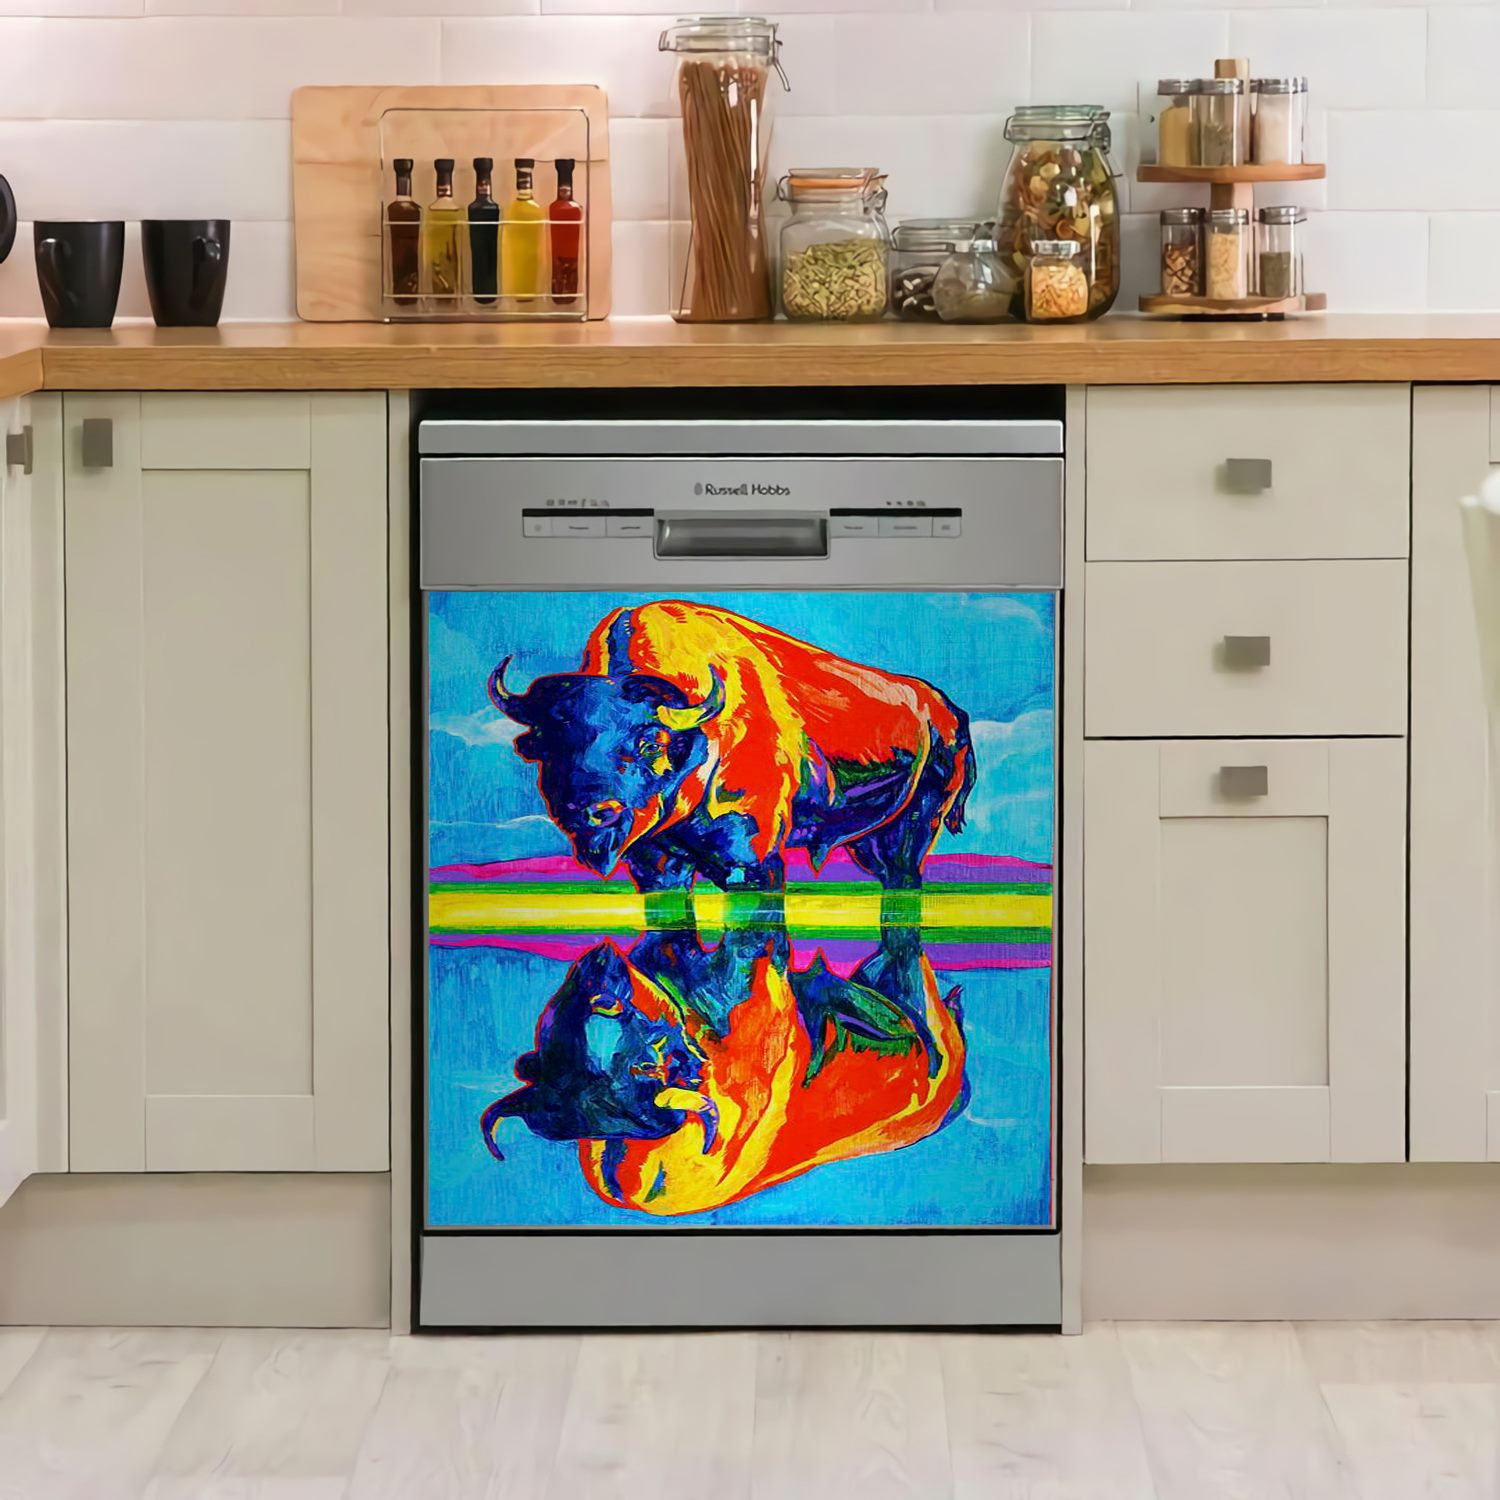 Cow Art Decor Kitchen Dishwasher Cover